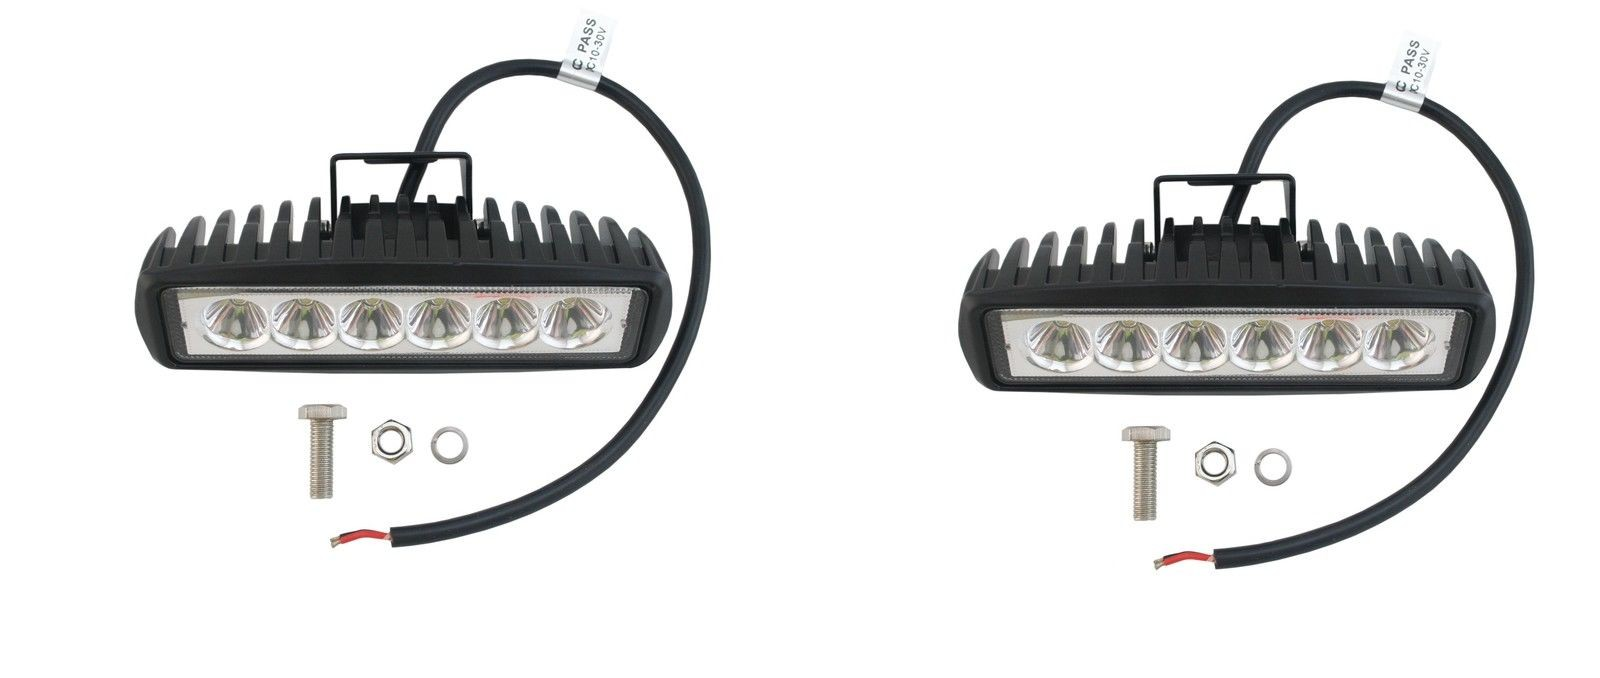 6 Inch 18W Pair of CREE LED Spot Light Bars